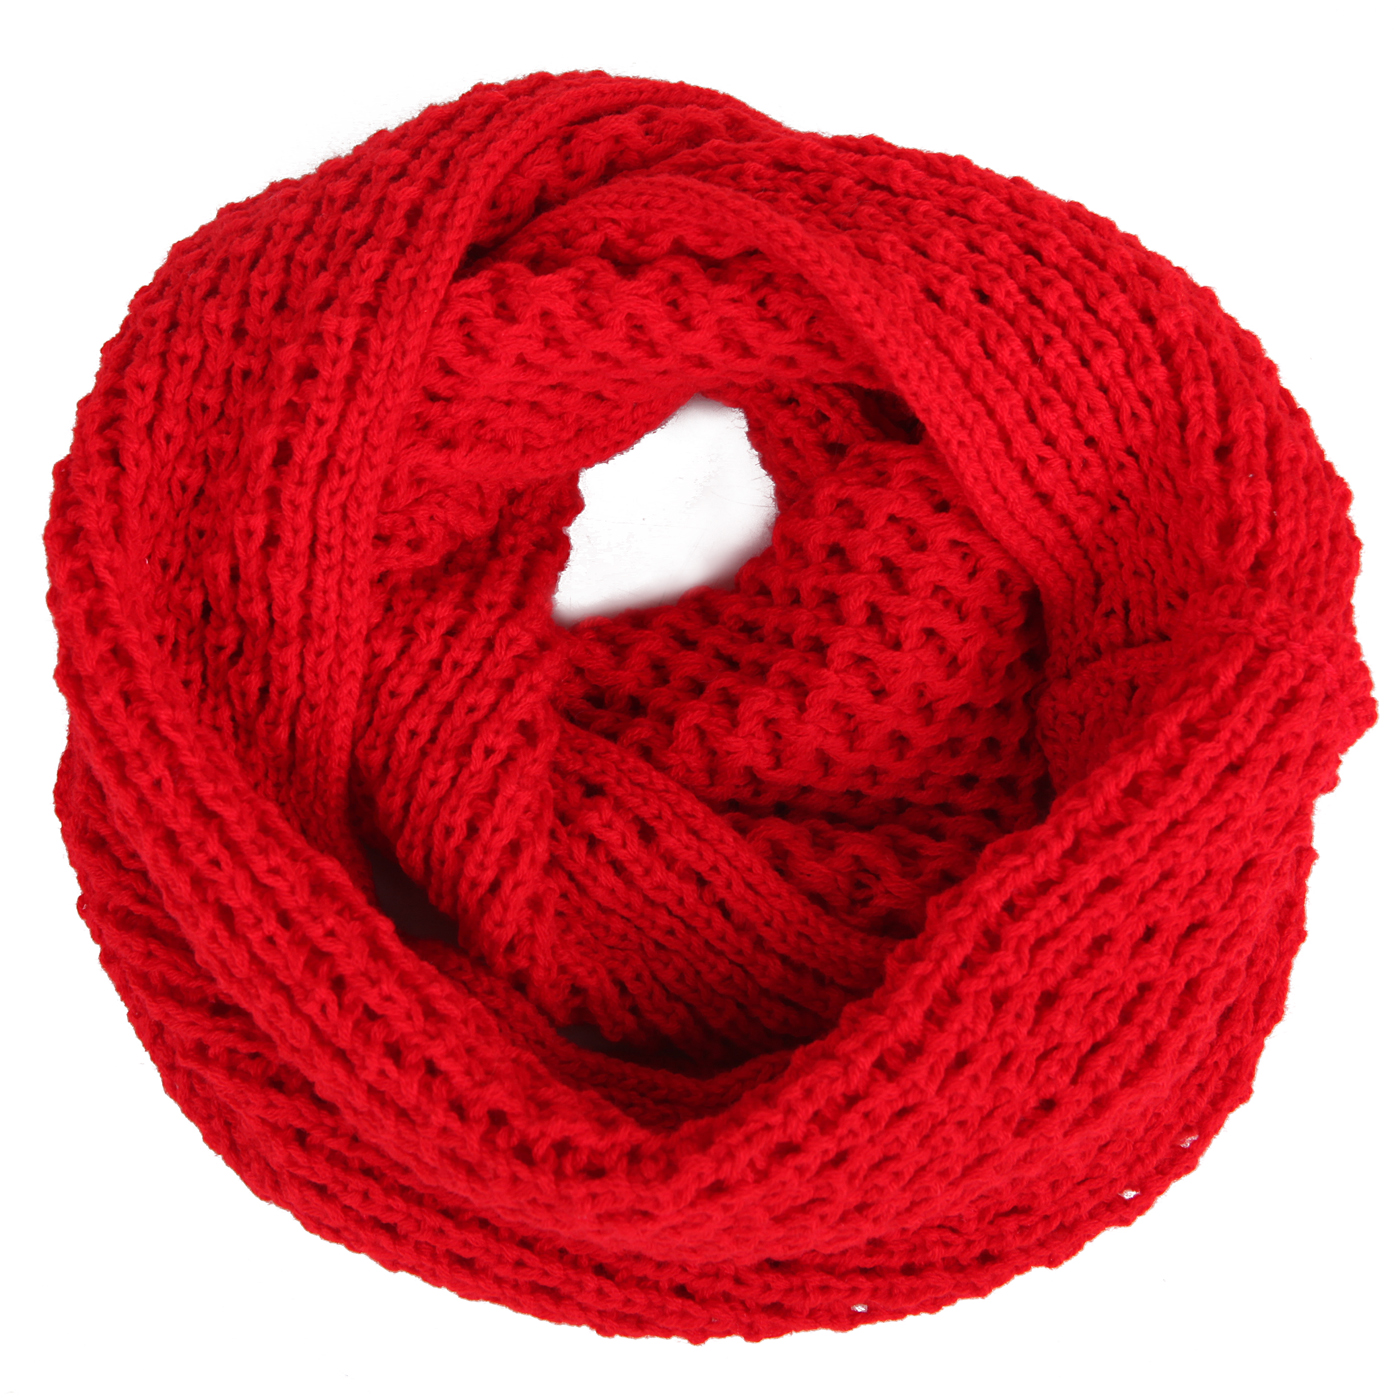 HDE Women's Winter Infinity Scarf Warm Knit Wrap Circle Loop Thick Cowl (Crochet Red)